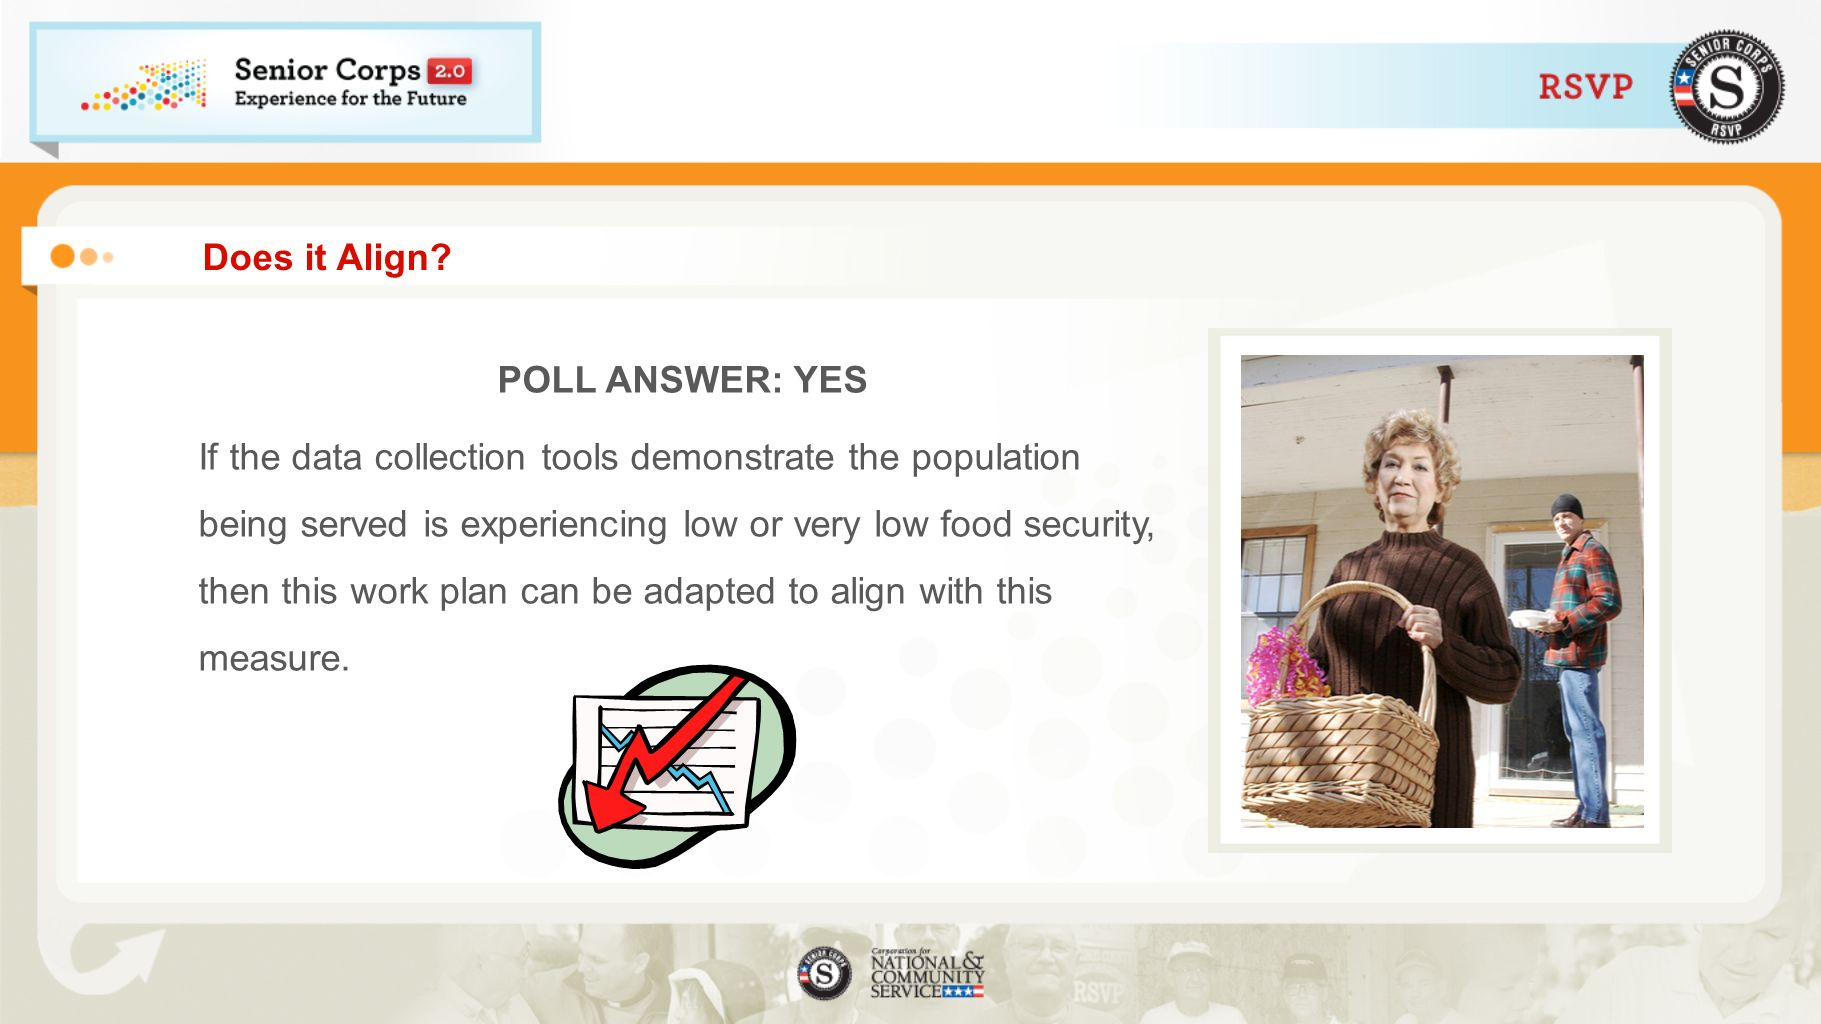 Does it Align POLL ANSWER: YES